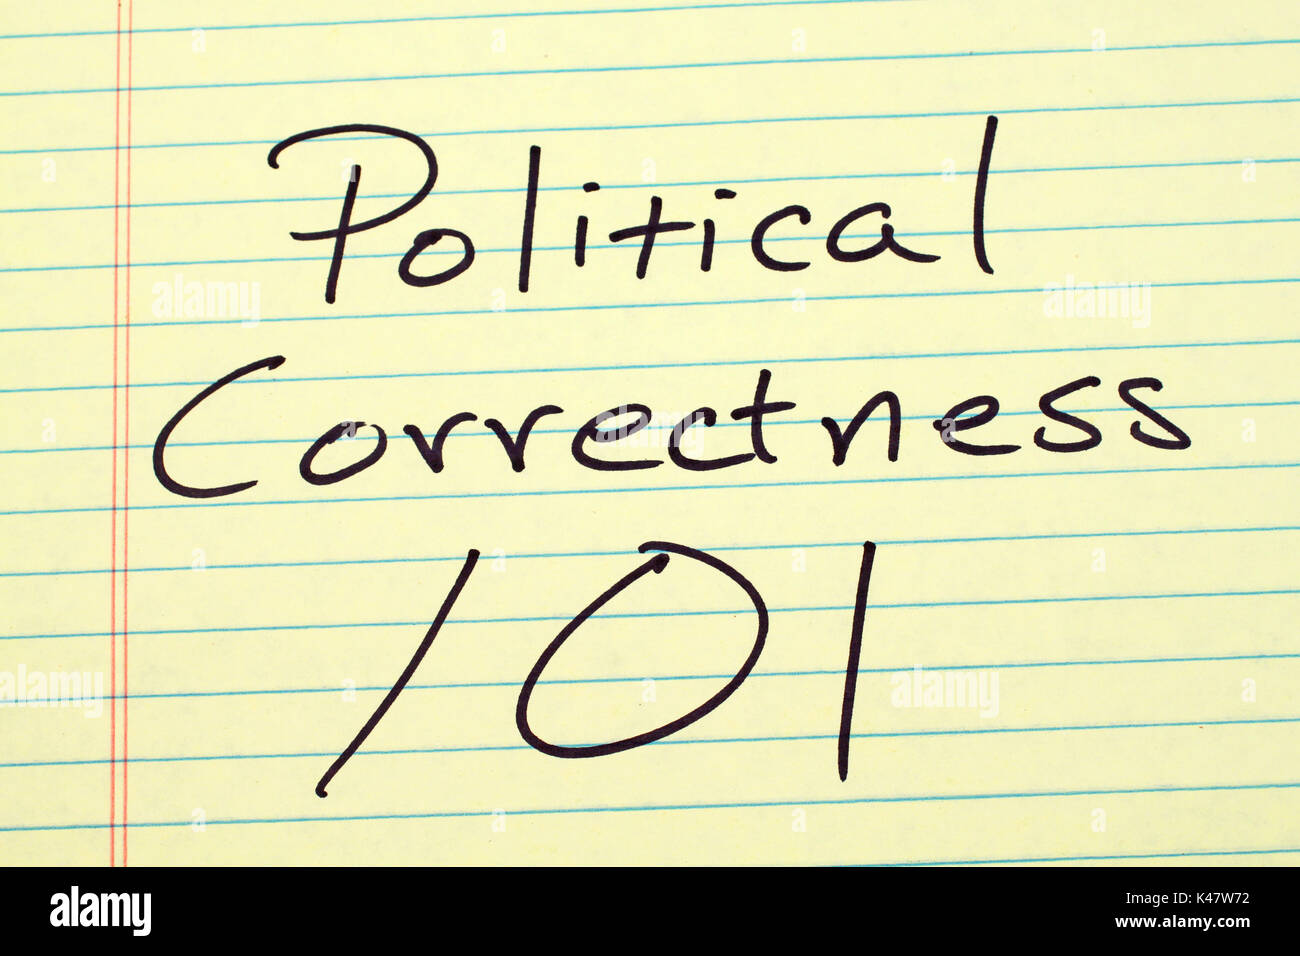 The words 'Political Correctness 101' on a yellow legal pad - Stock Image